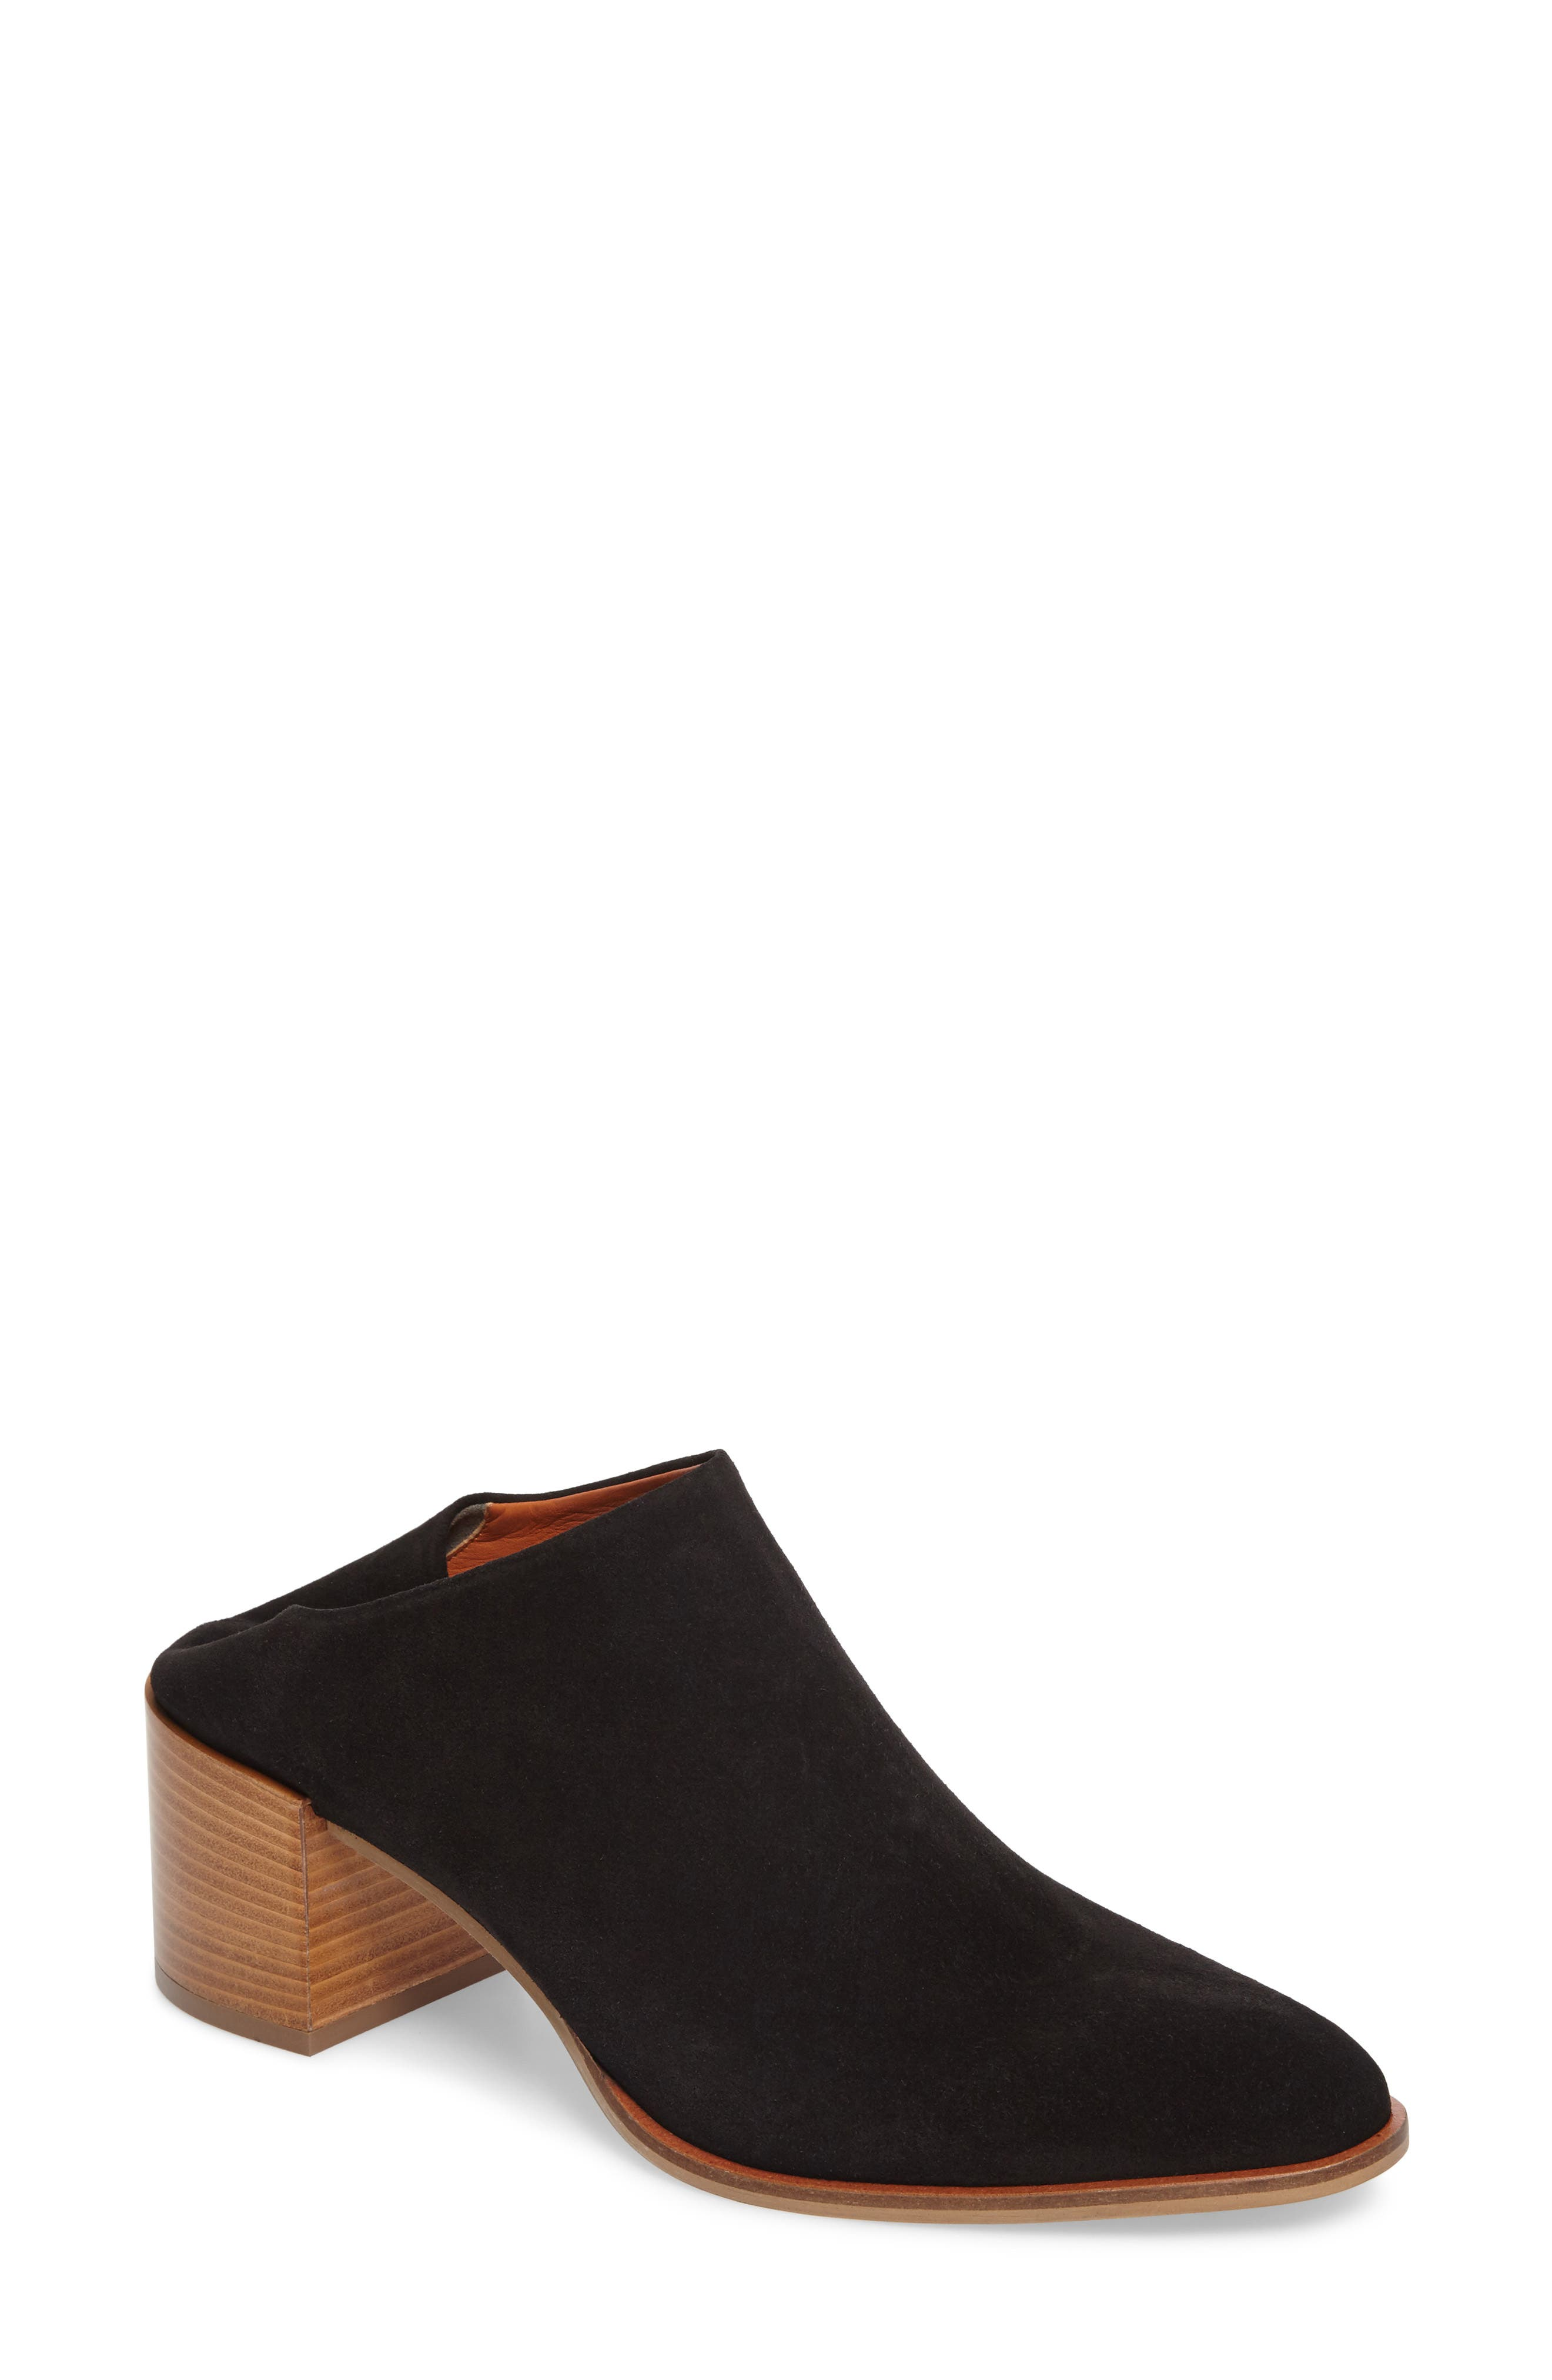 Main Image - Everlane The Suede Heel Mule (Women)